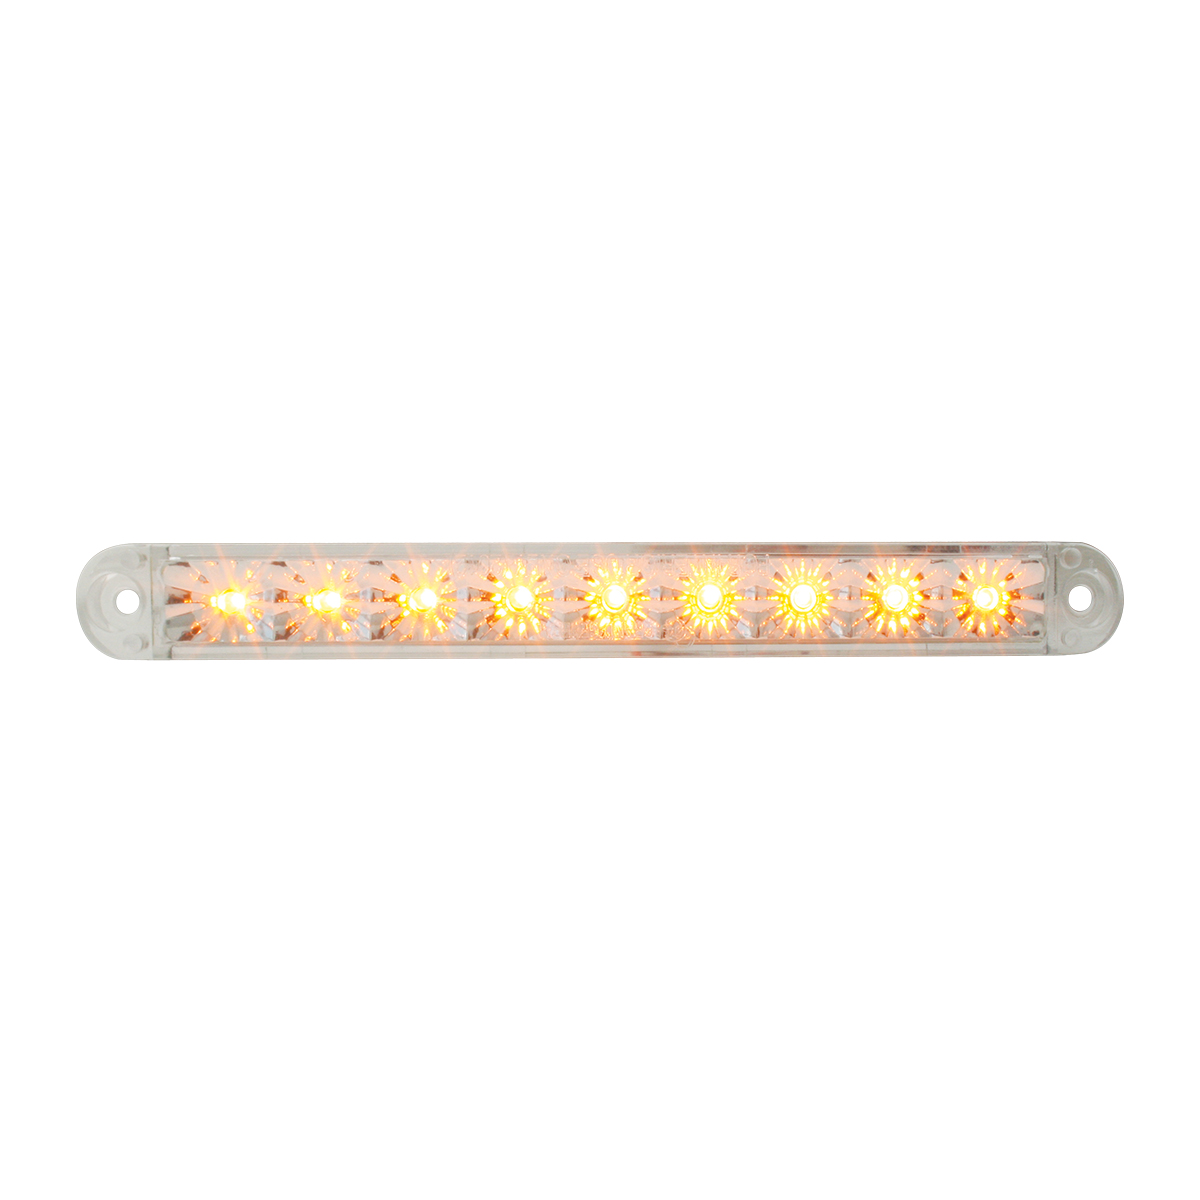 "76141 6.5"" Flush Mount LED Light Bar"